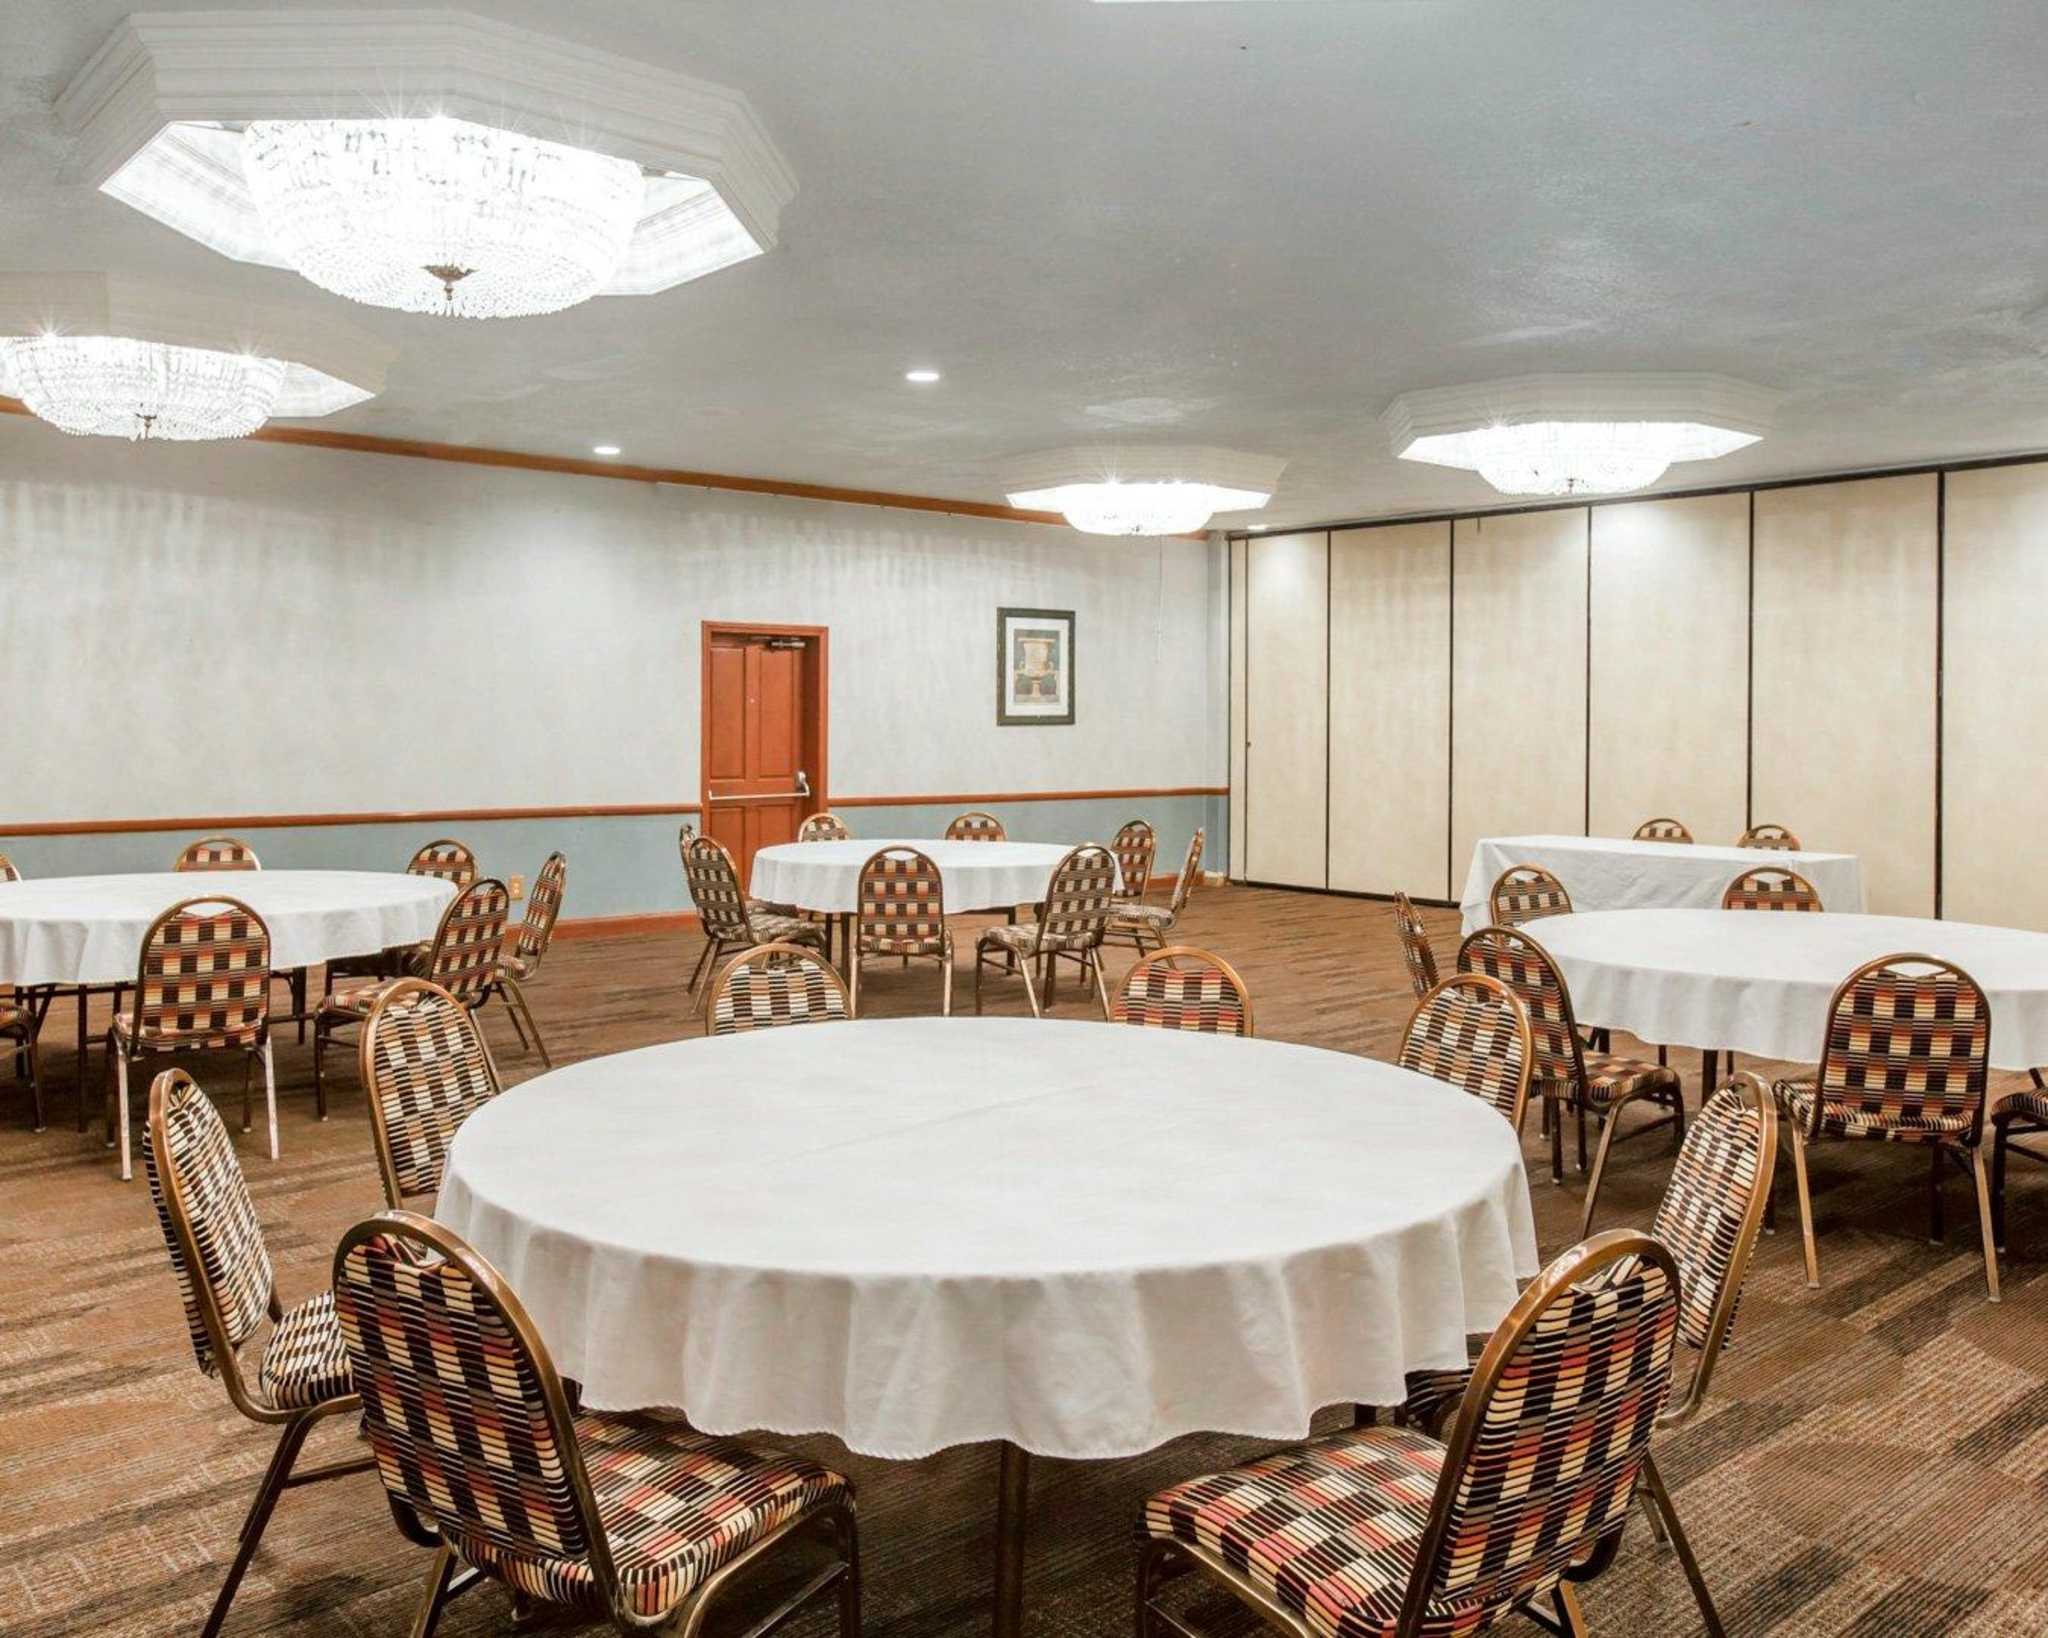 Clarion Inn Conference Center image 24